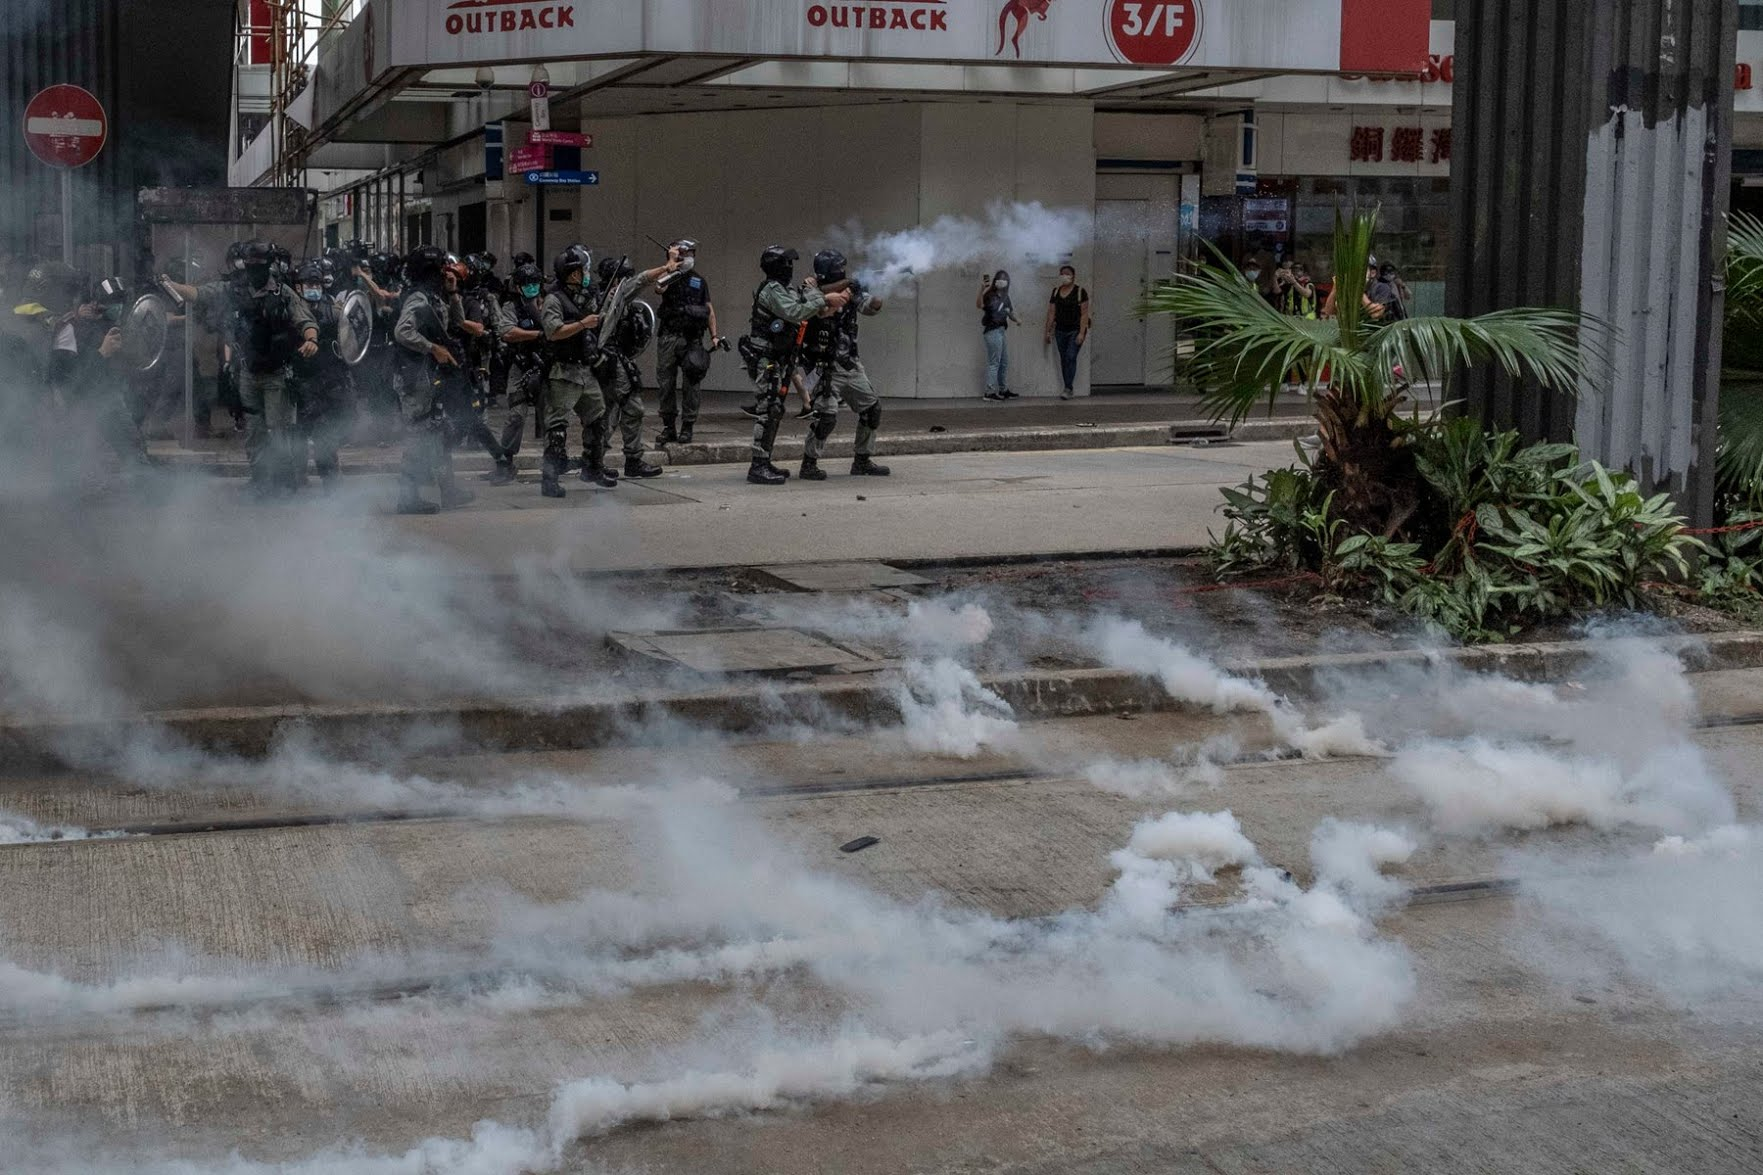 Police officers fired tear gas to disperse protesters in Hong Kong on Sunday.